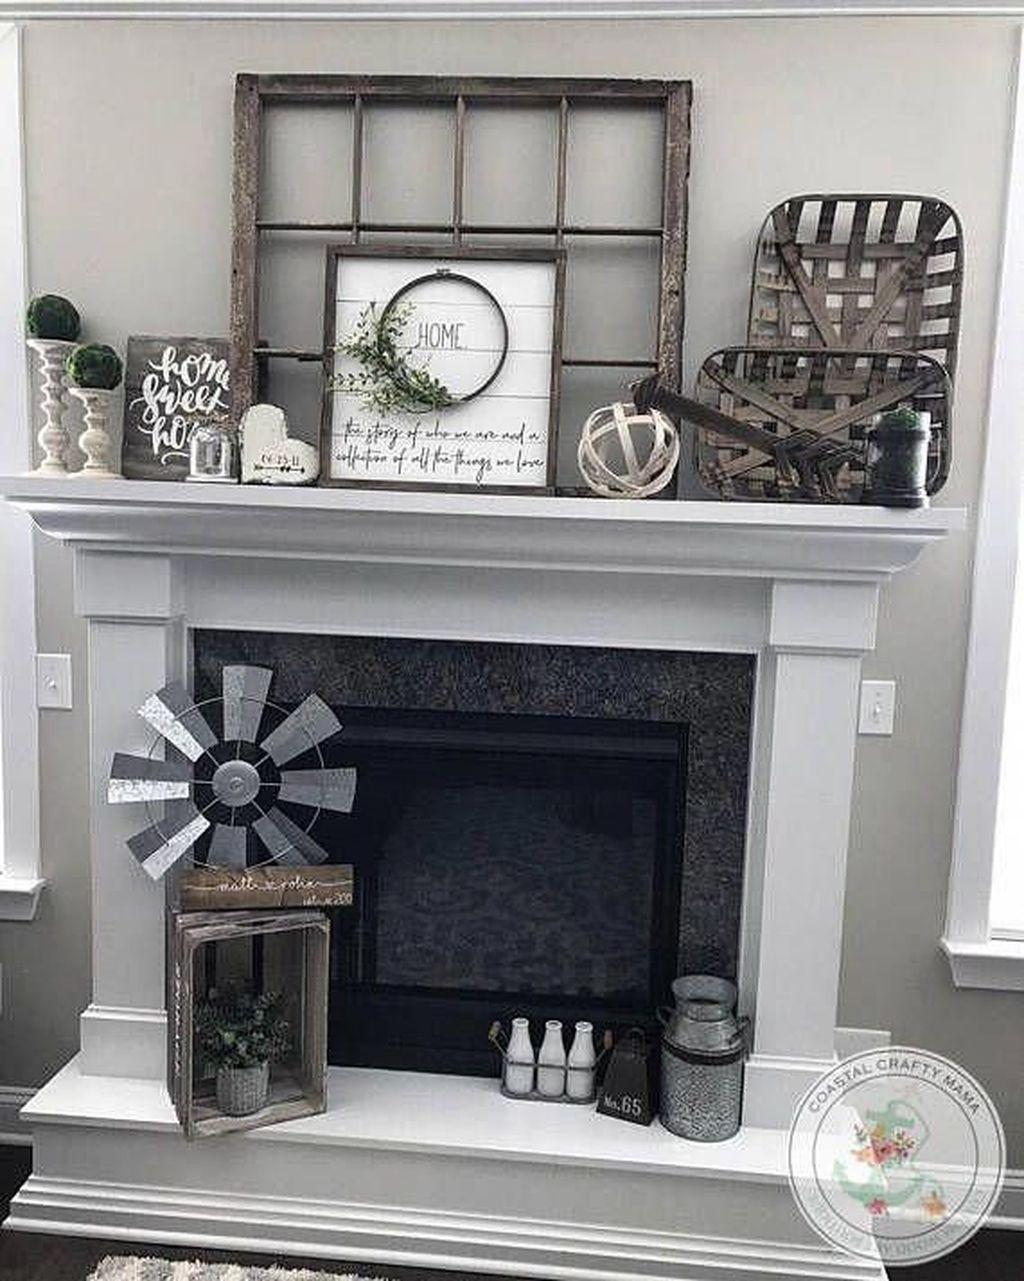 Admiring Fireplace Décor Ideas For Cottage To Try 11